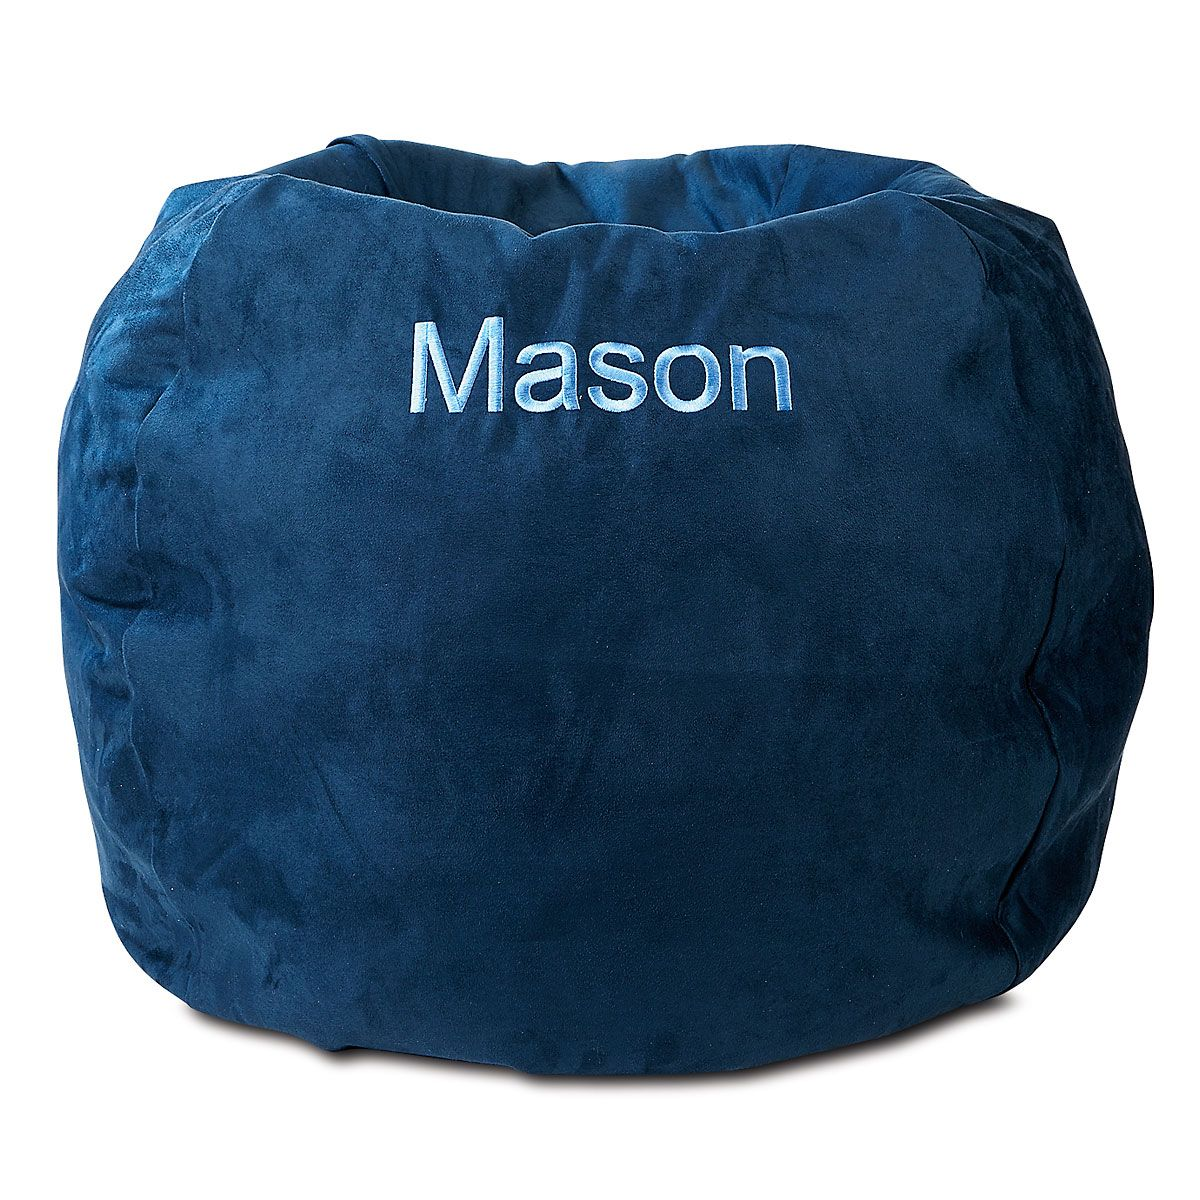 Personalized Navy Bean Bag Chair